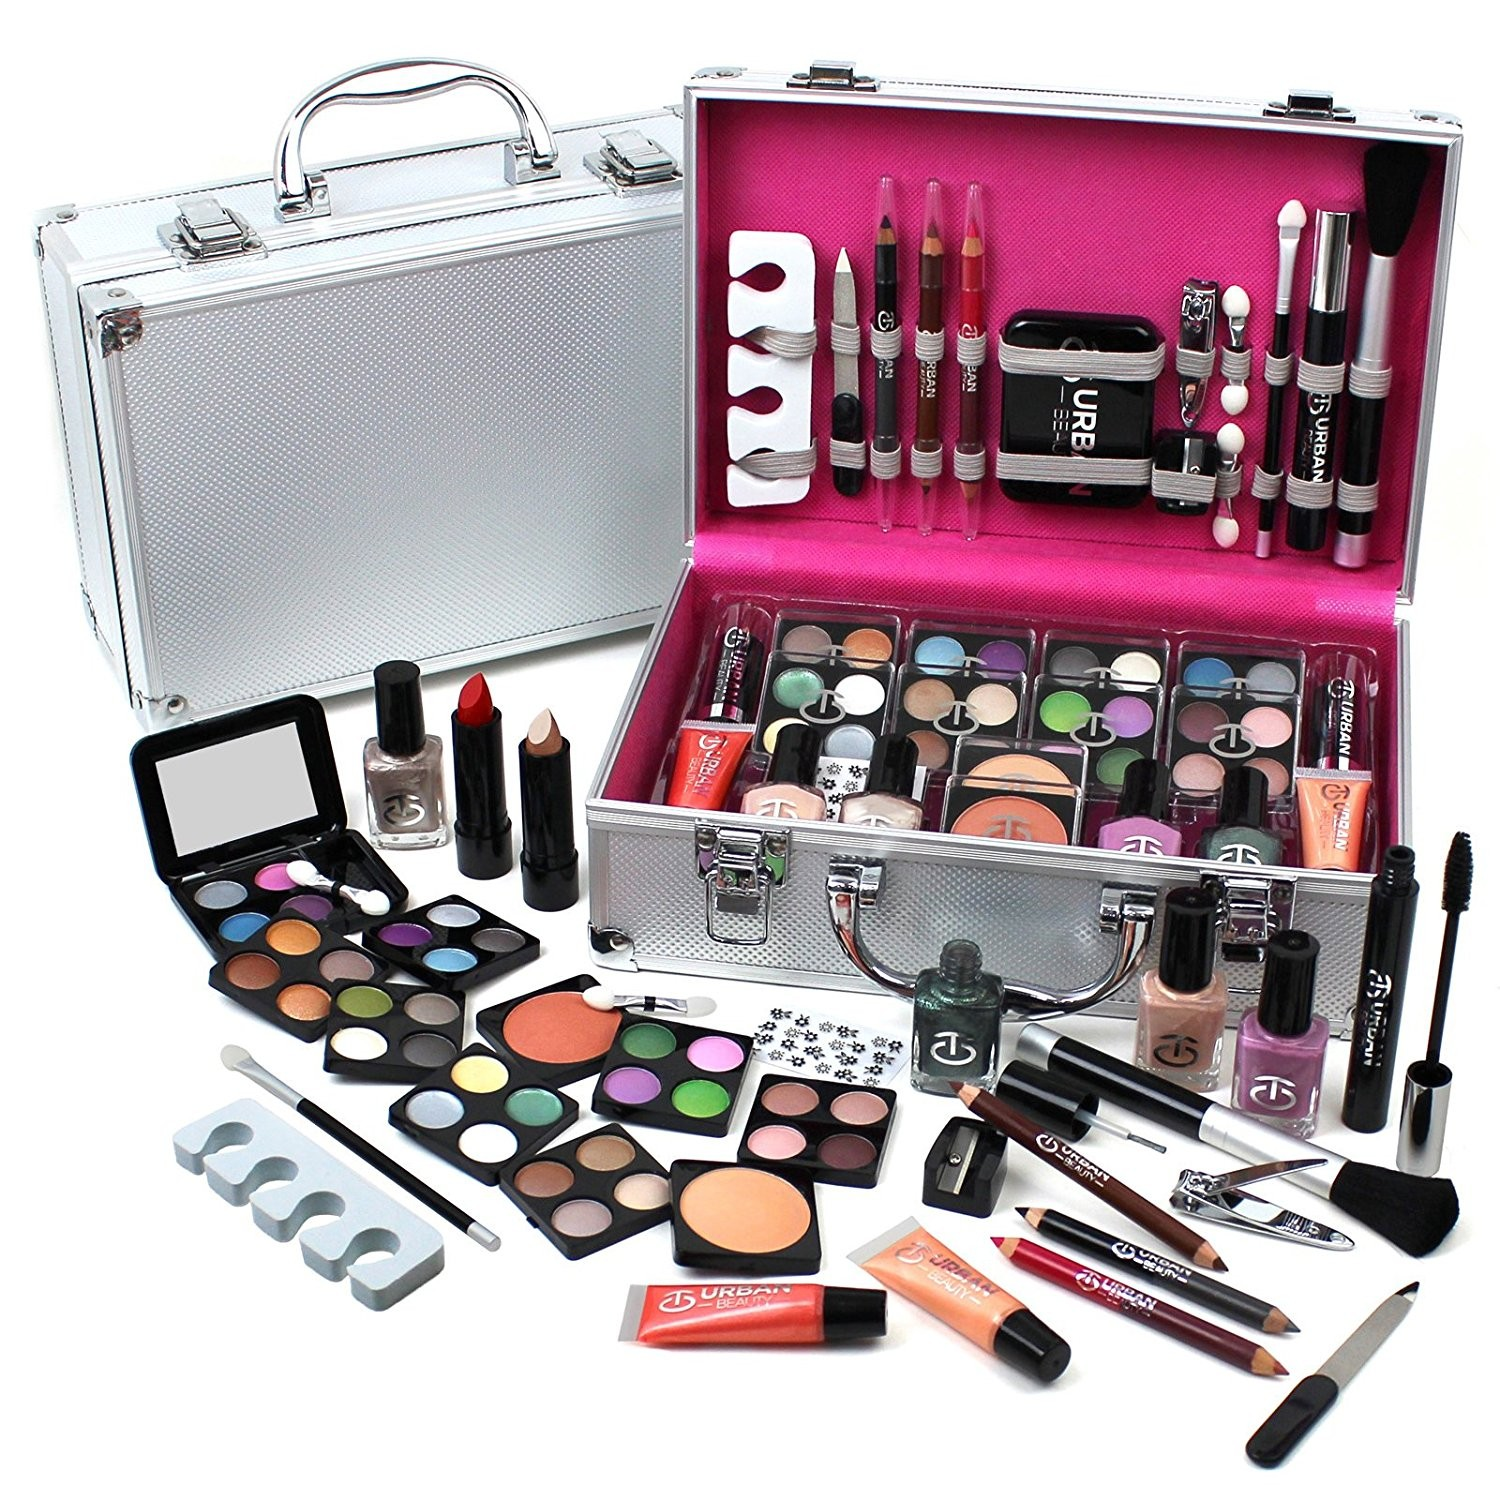 Beauty Make Up Set & Vanity Case